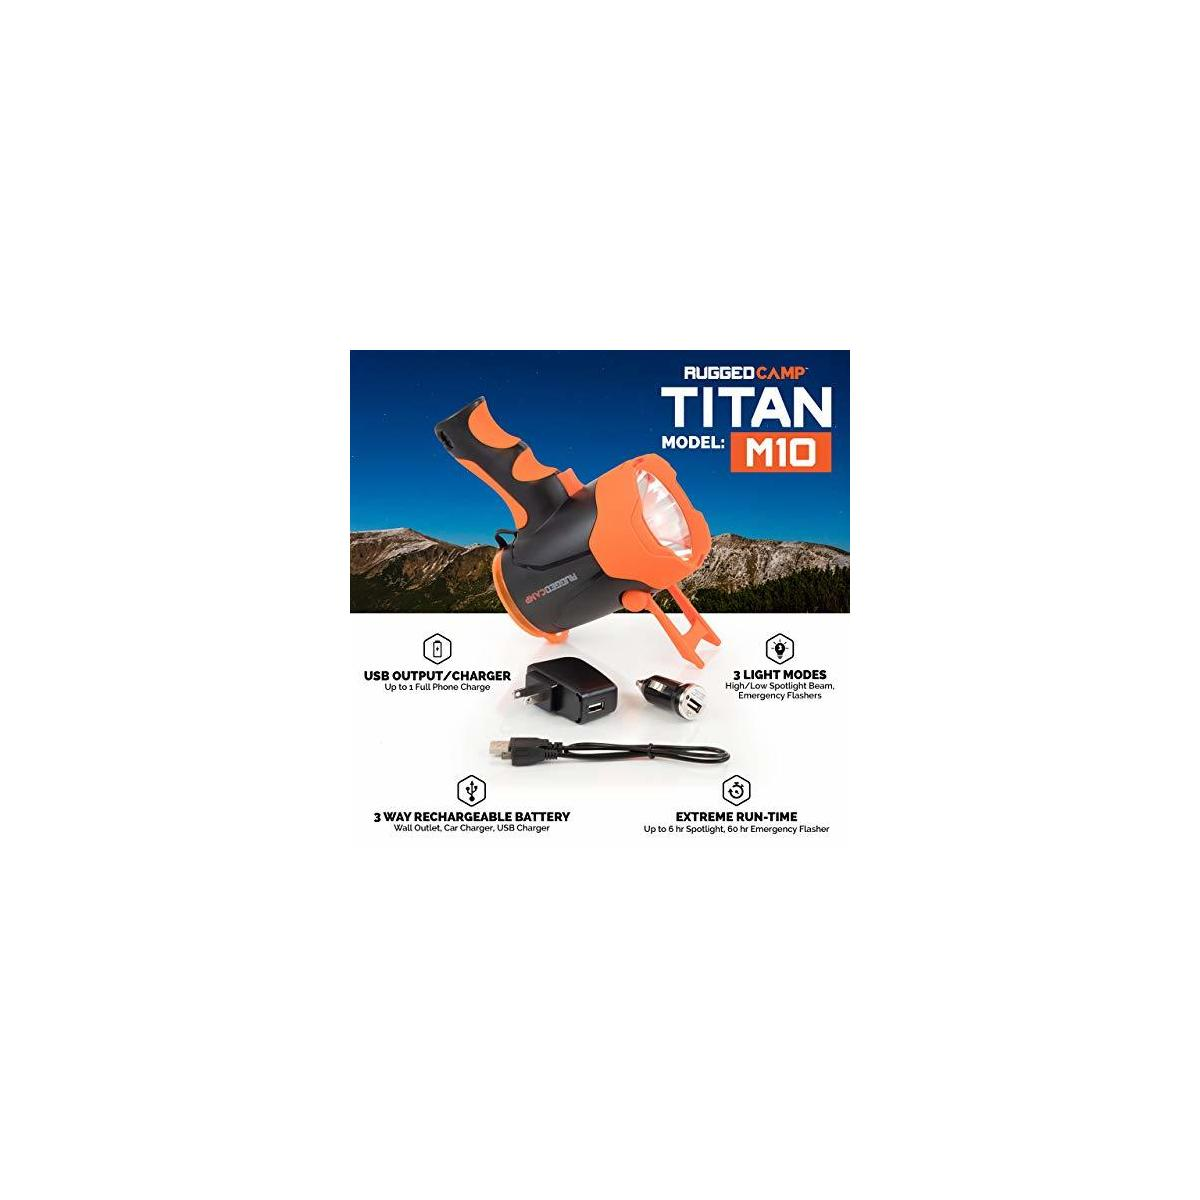 TITAN M10 Rechargeable Spotlight 10W LED - High Powered Spot Light - Built In Stand & Phone Charger - Perfect For Camping, Hiking, Emergencies & Outdoors - Charging Cables